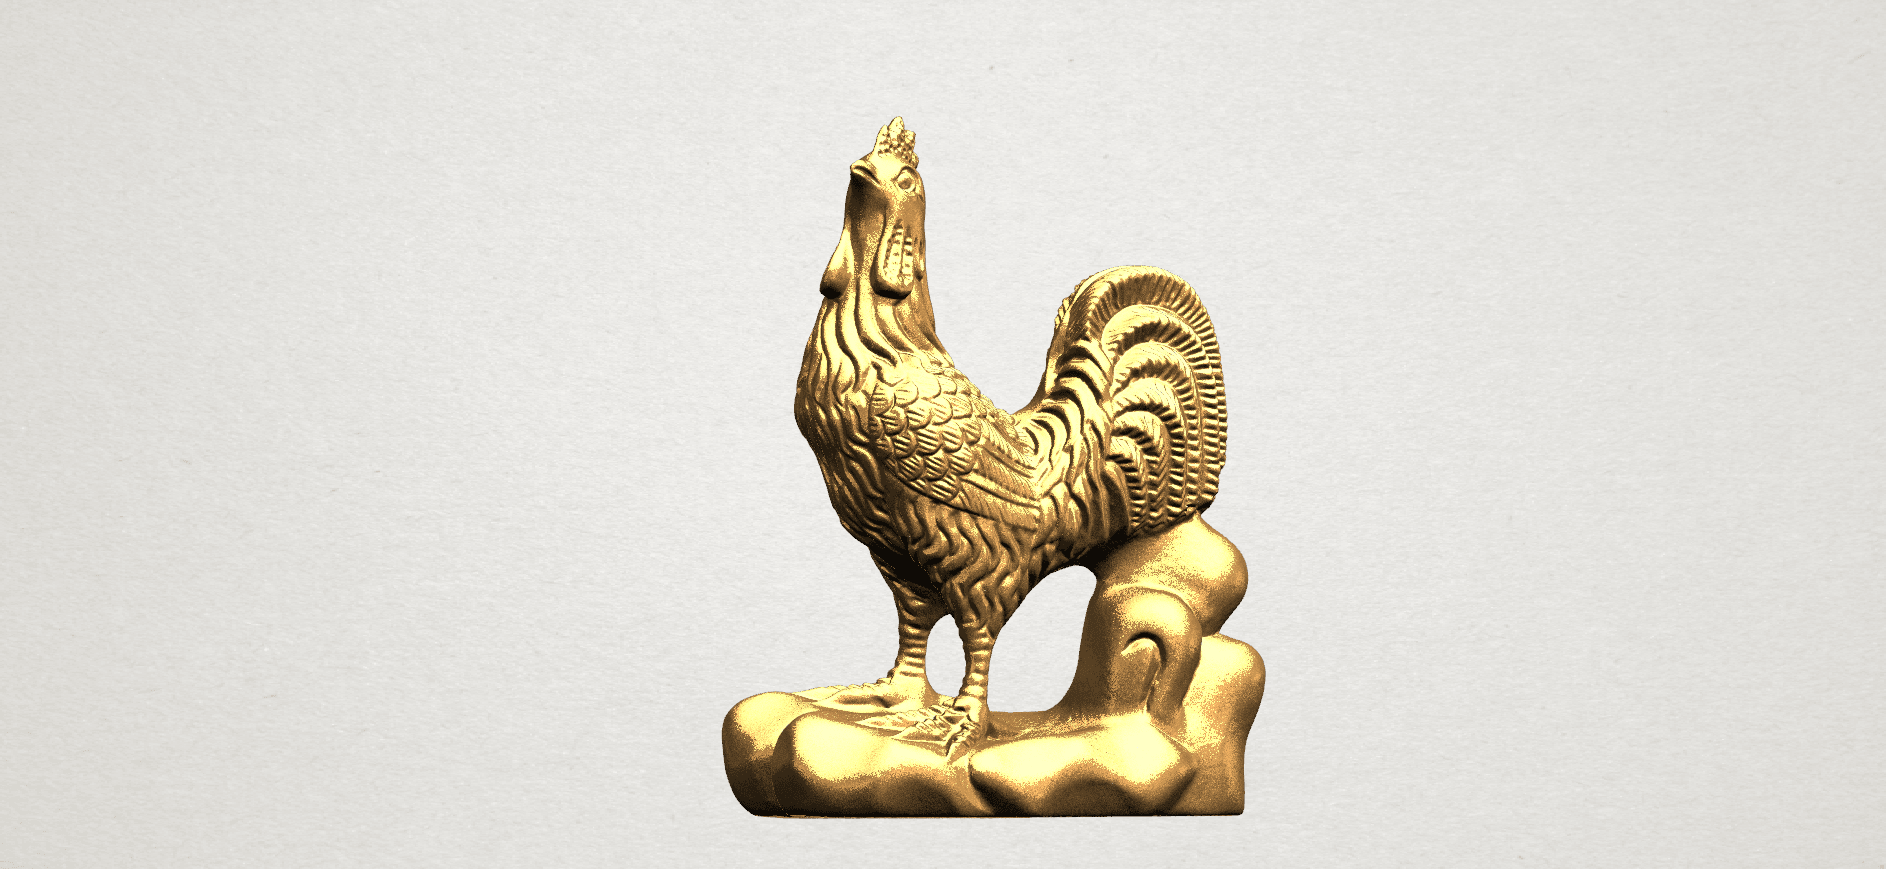 TDA0051j Chinese Horoscope10-B01.png Download free STL file Chinese Horoscope 10 Chicken - TOP MODEL • 3D printable design, GeorgesNikkei